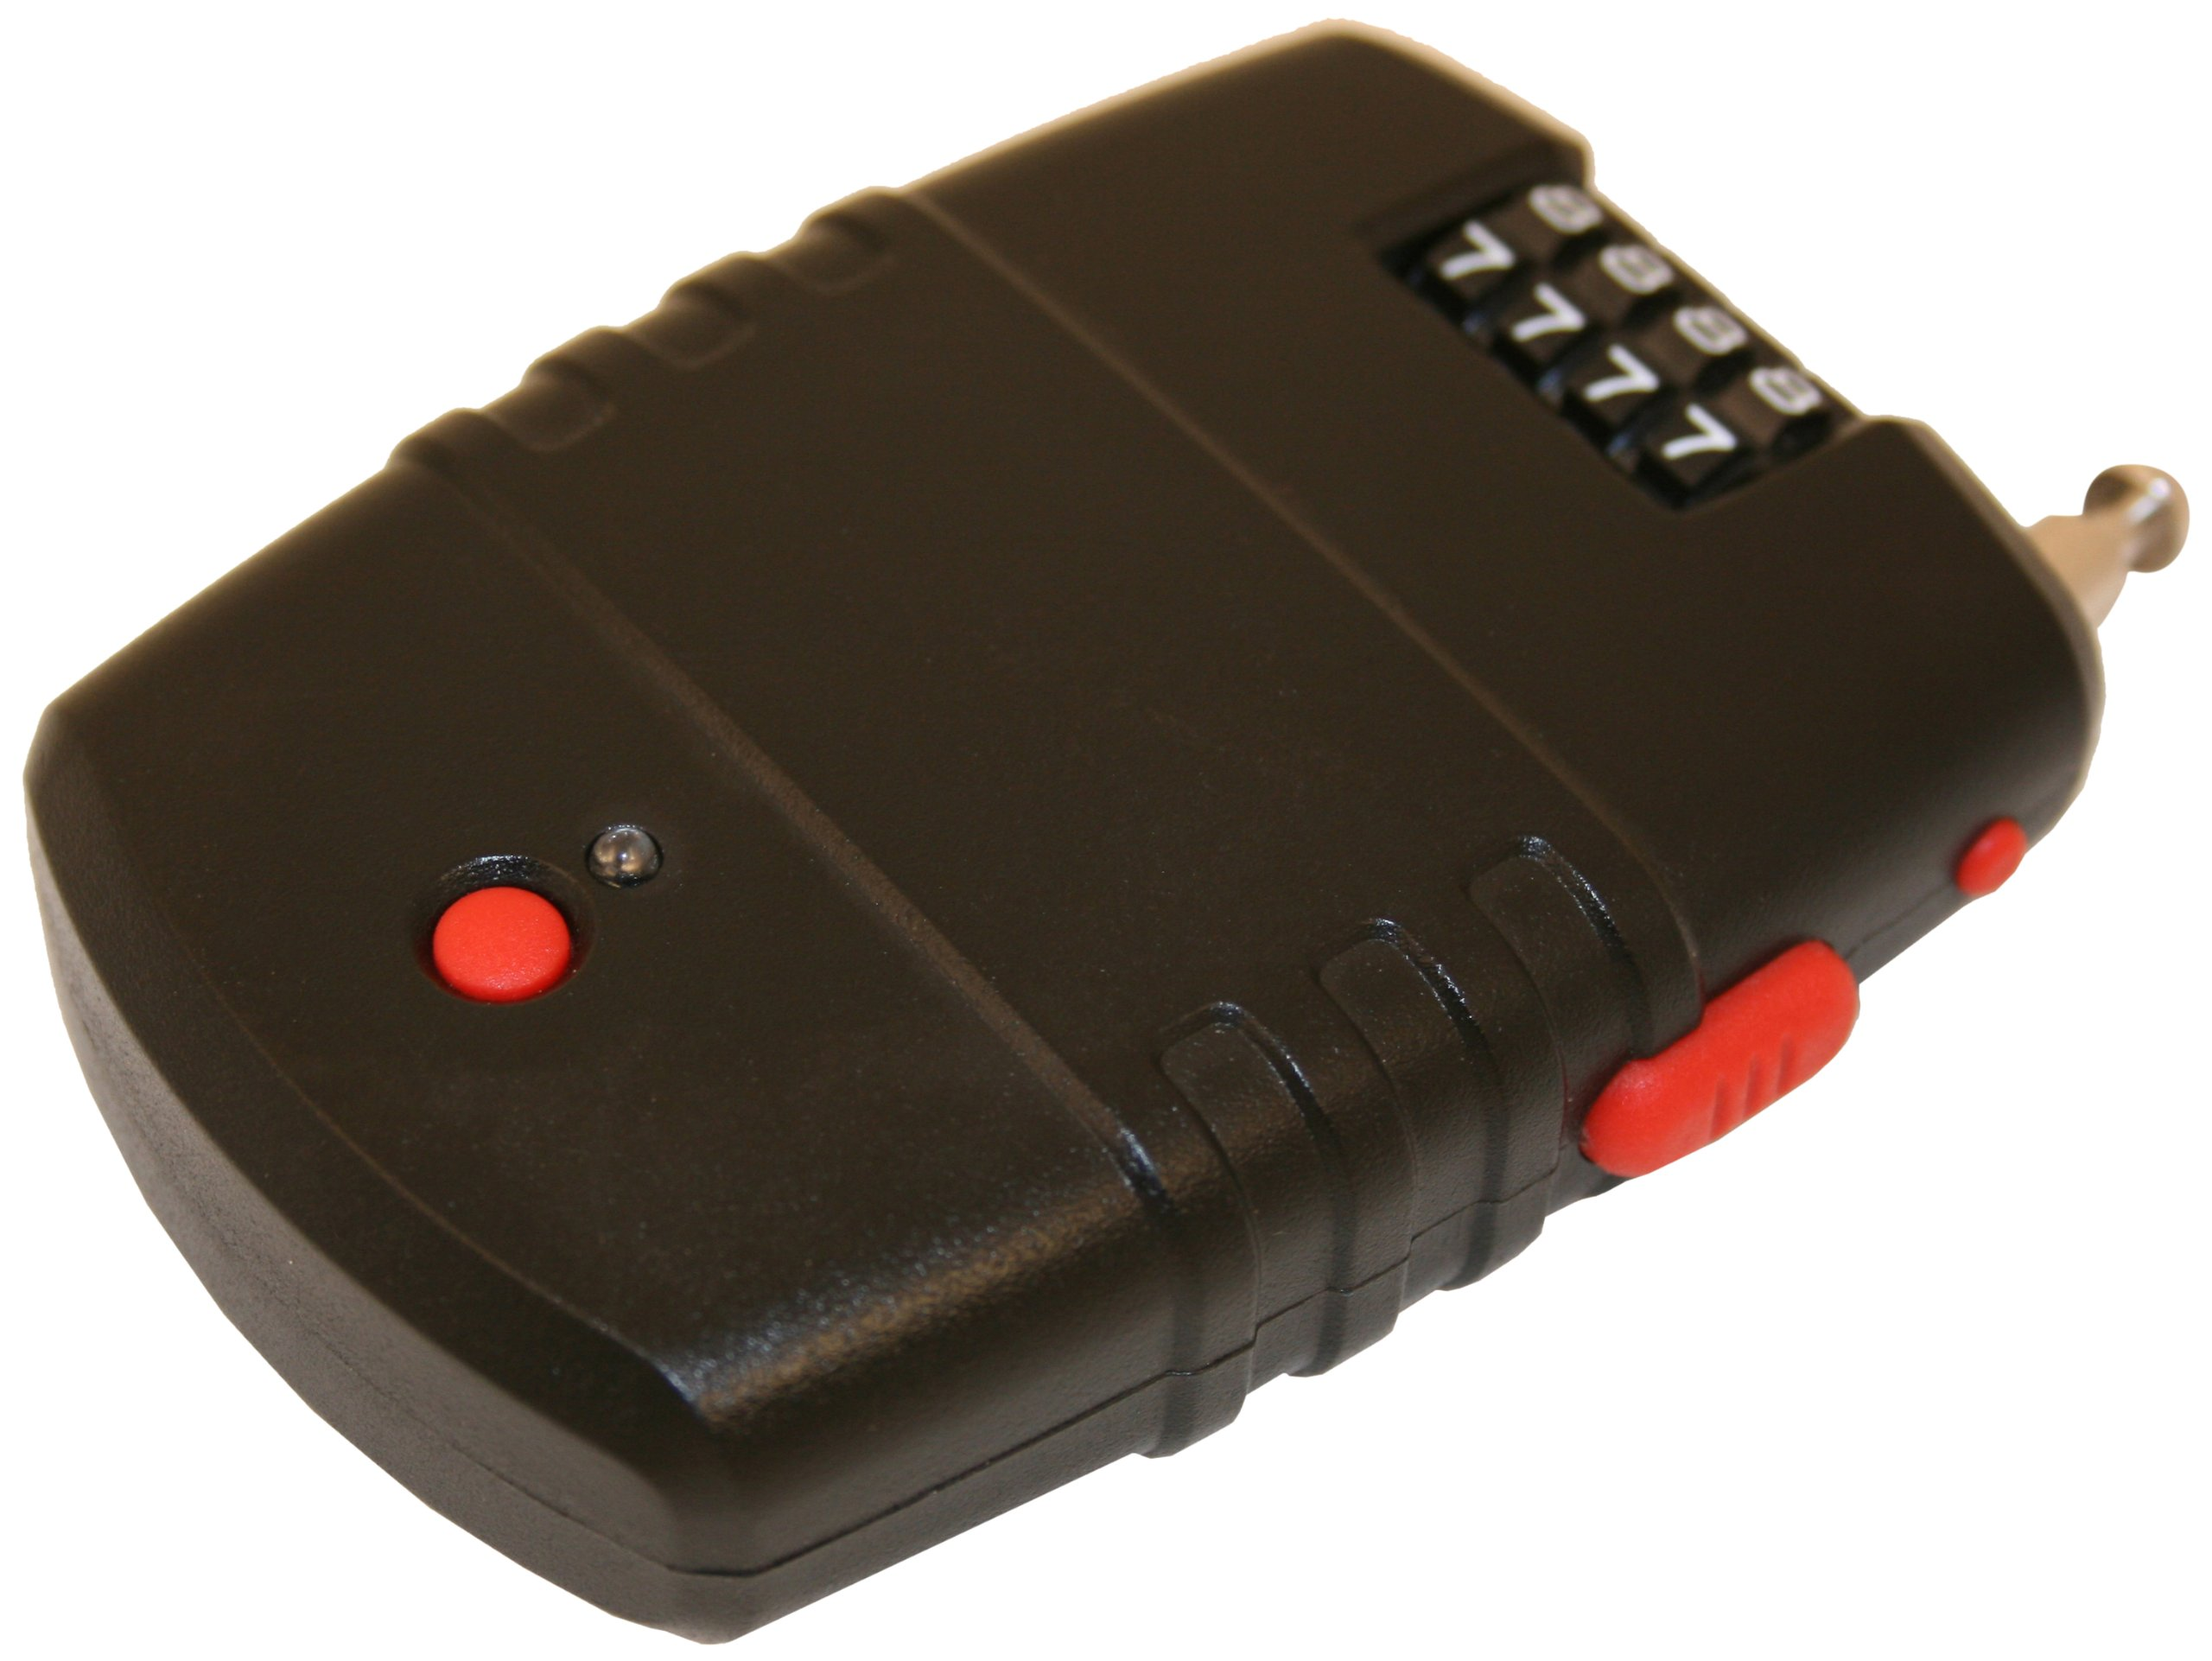 FJM Security SX-776 Cable Lock Alarm with Piercing 120 Decibel Siren by FJM Security (Image #1)